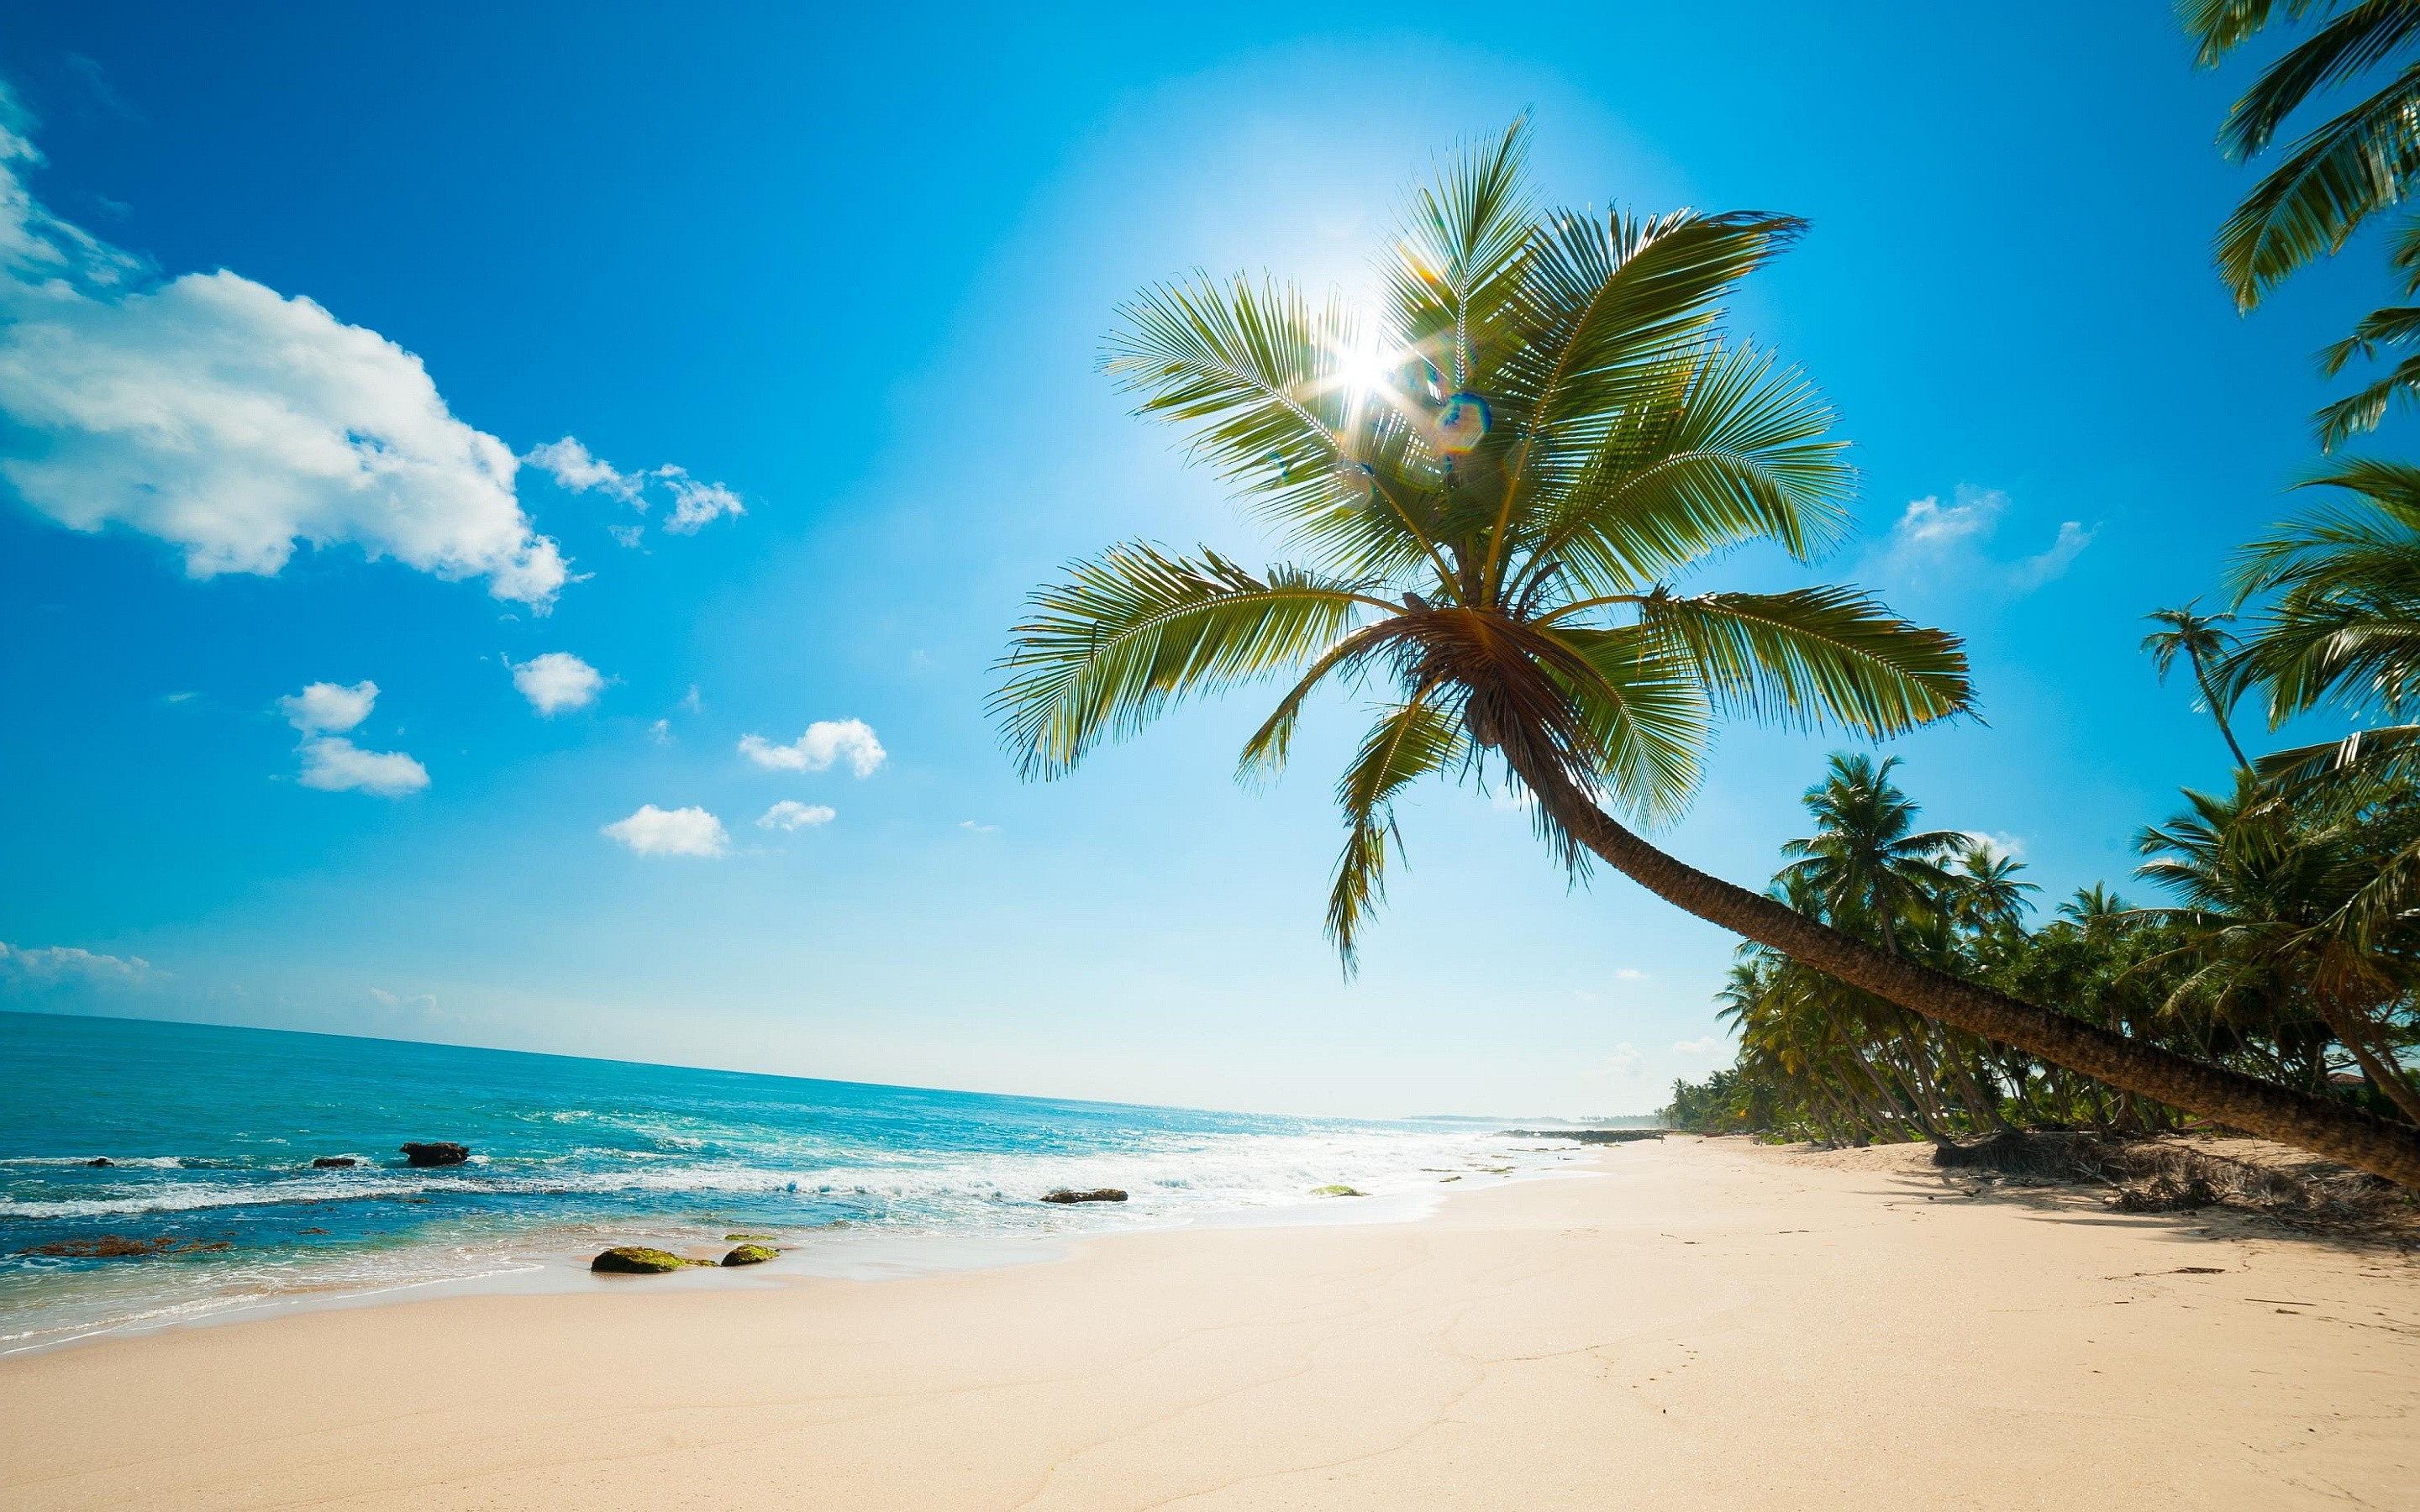 Related Wallpapers from Hawaii Wallpaper. Awesome Beach Background